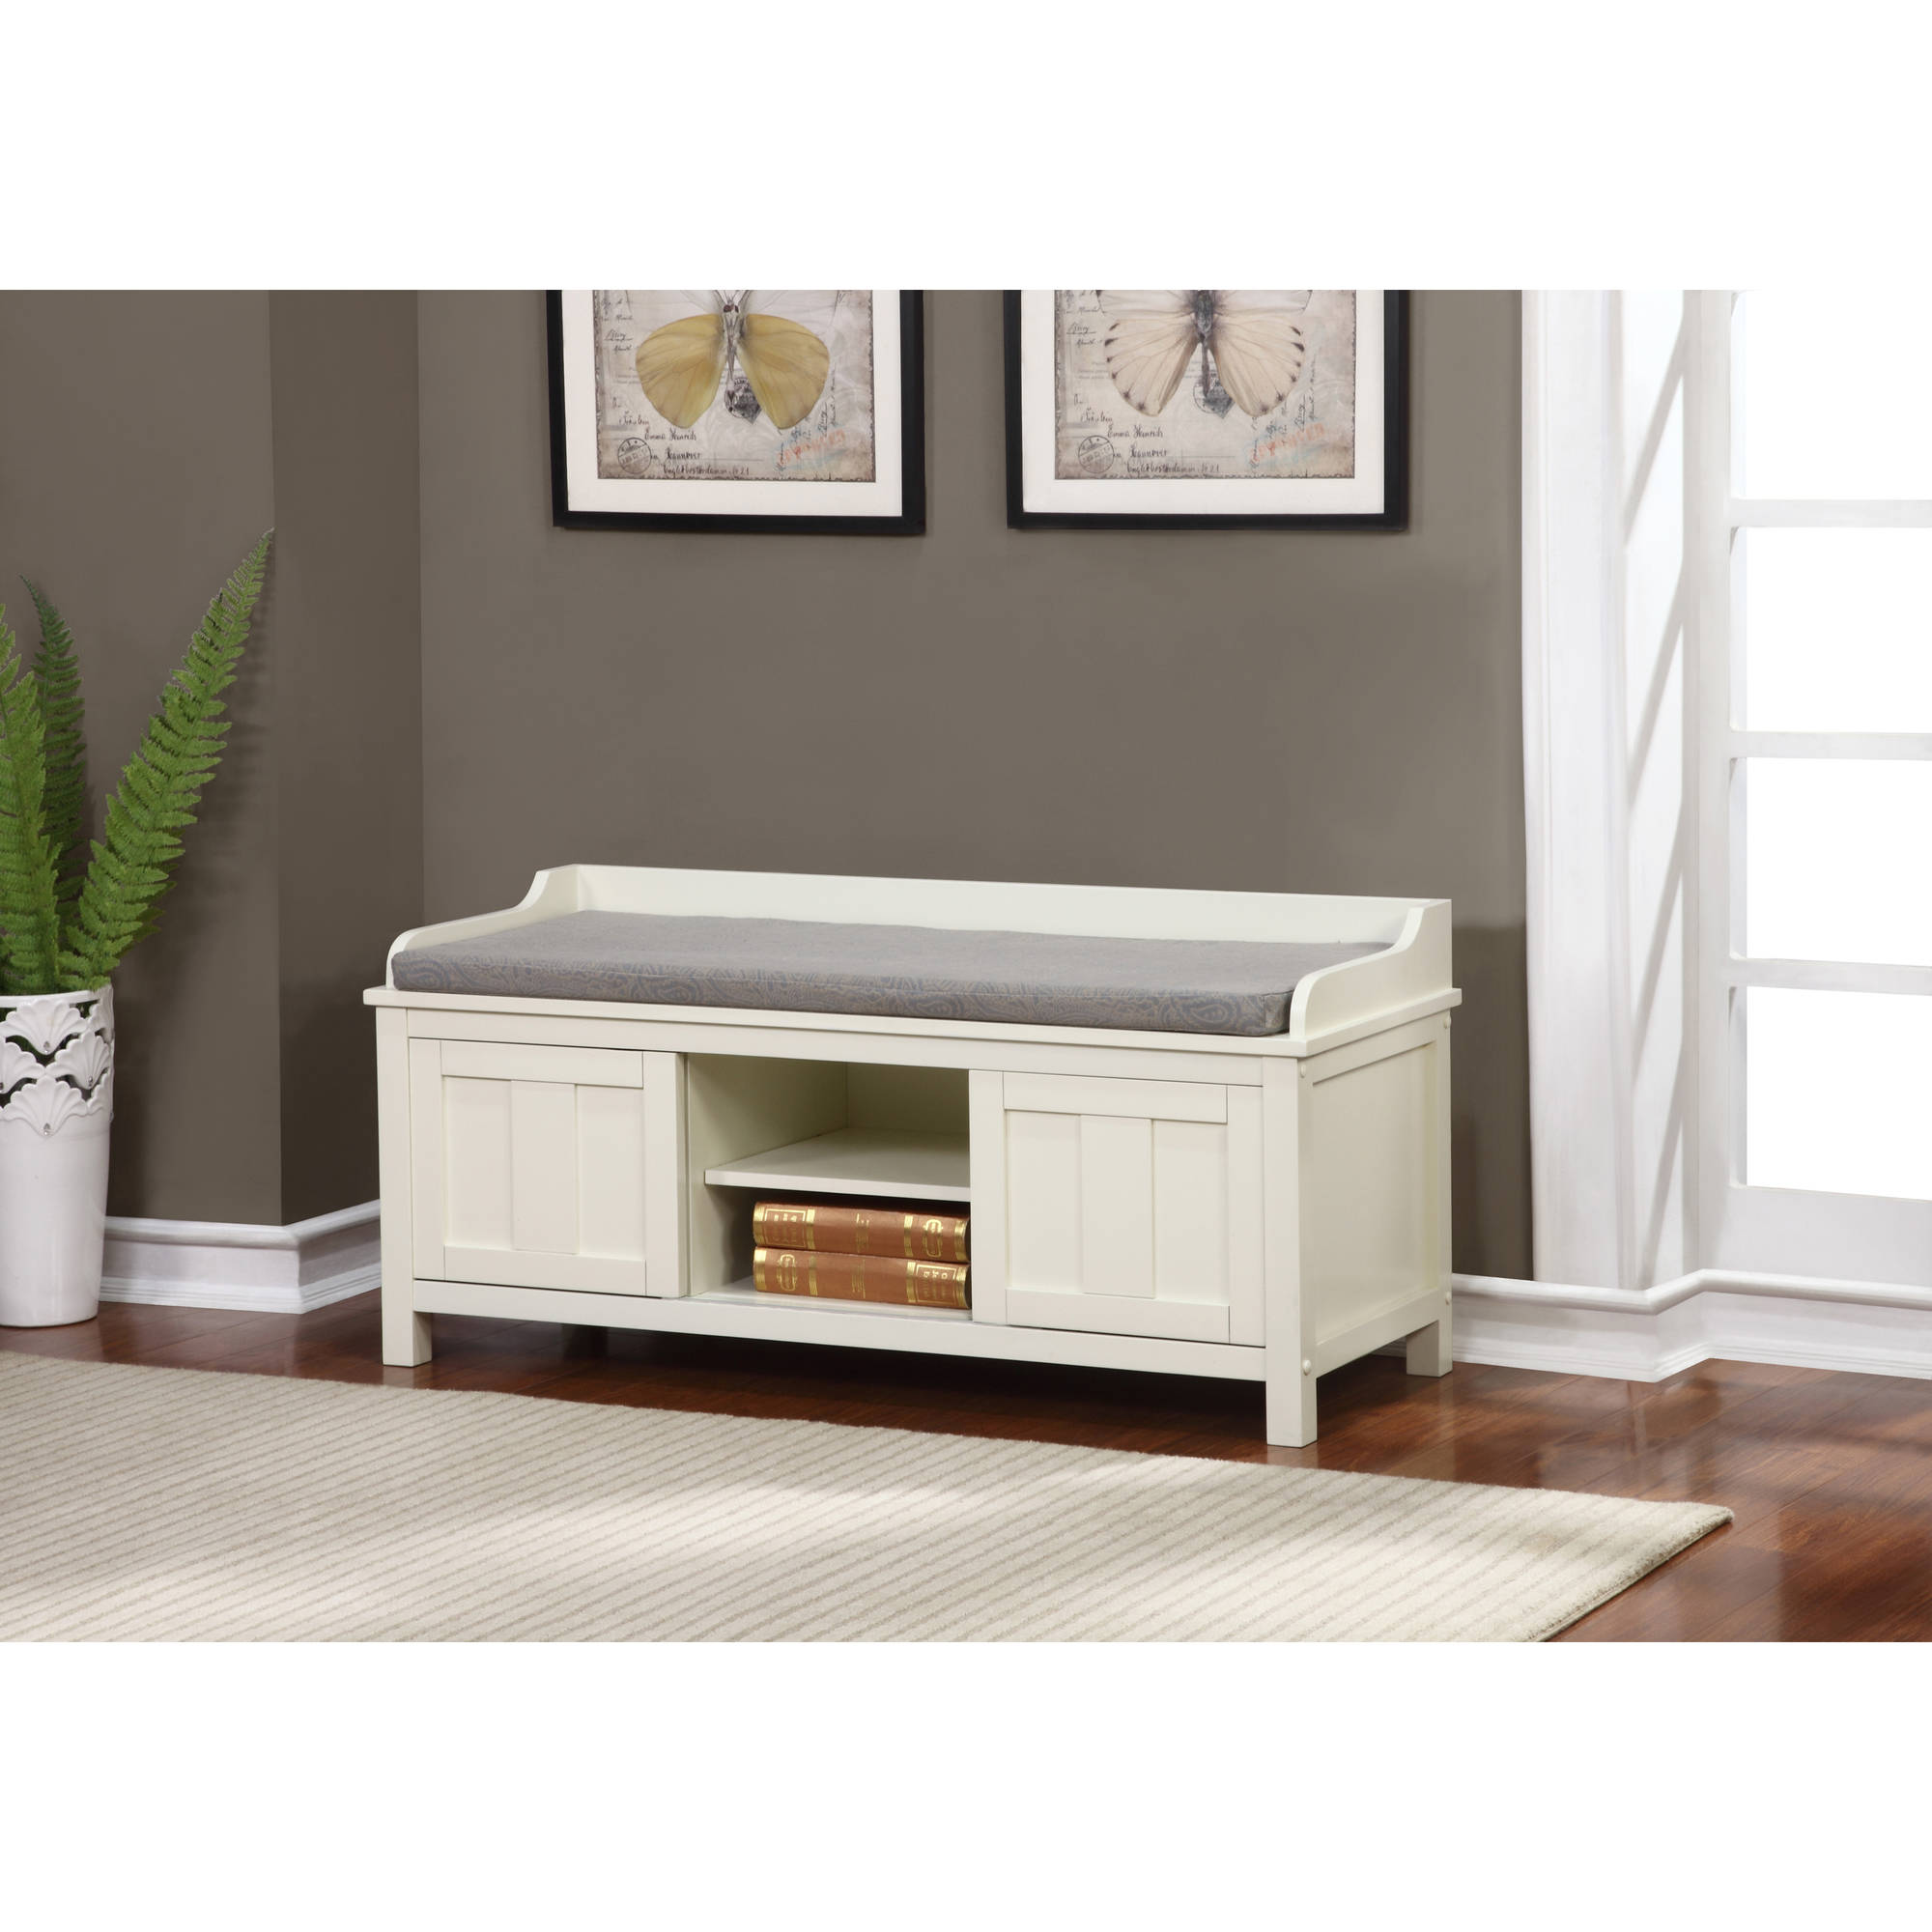 Lakeville White Storage Bench 18.75 inches Seat Height  sc 1 st  Walmart & Lakeville White Storage Bench 18.75 inches Seat Height - Walmart.com